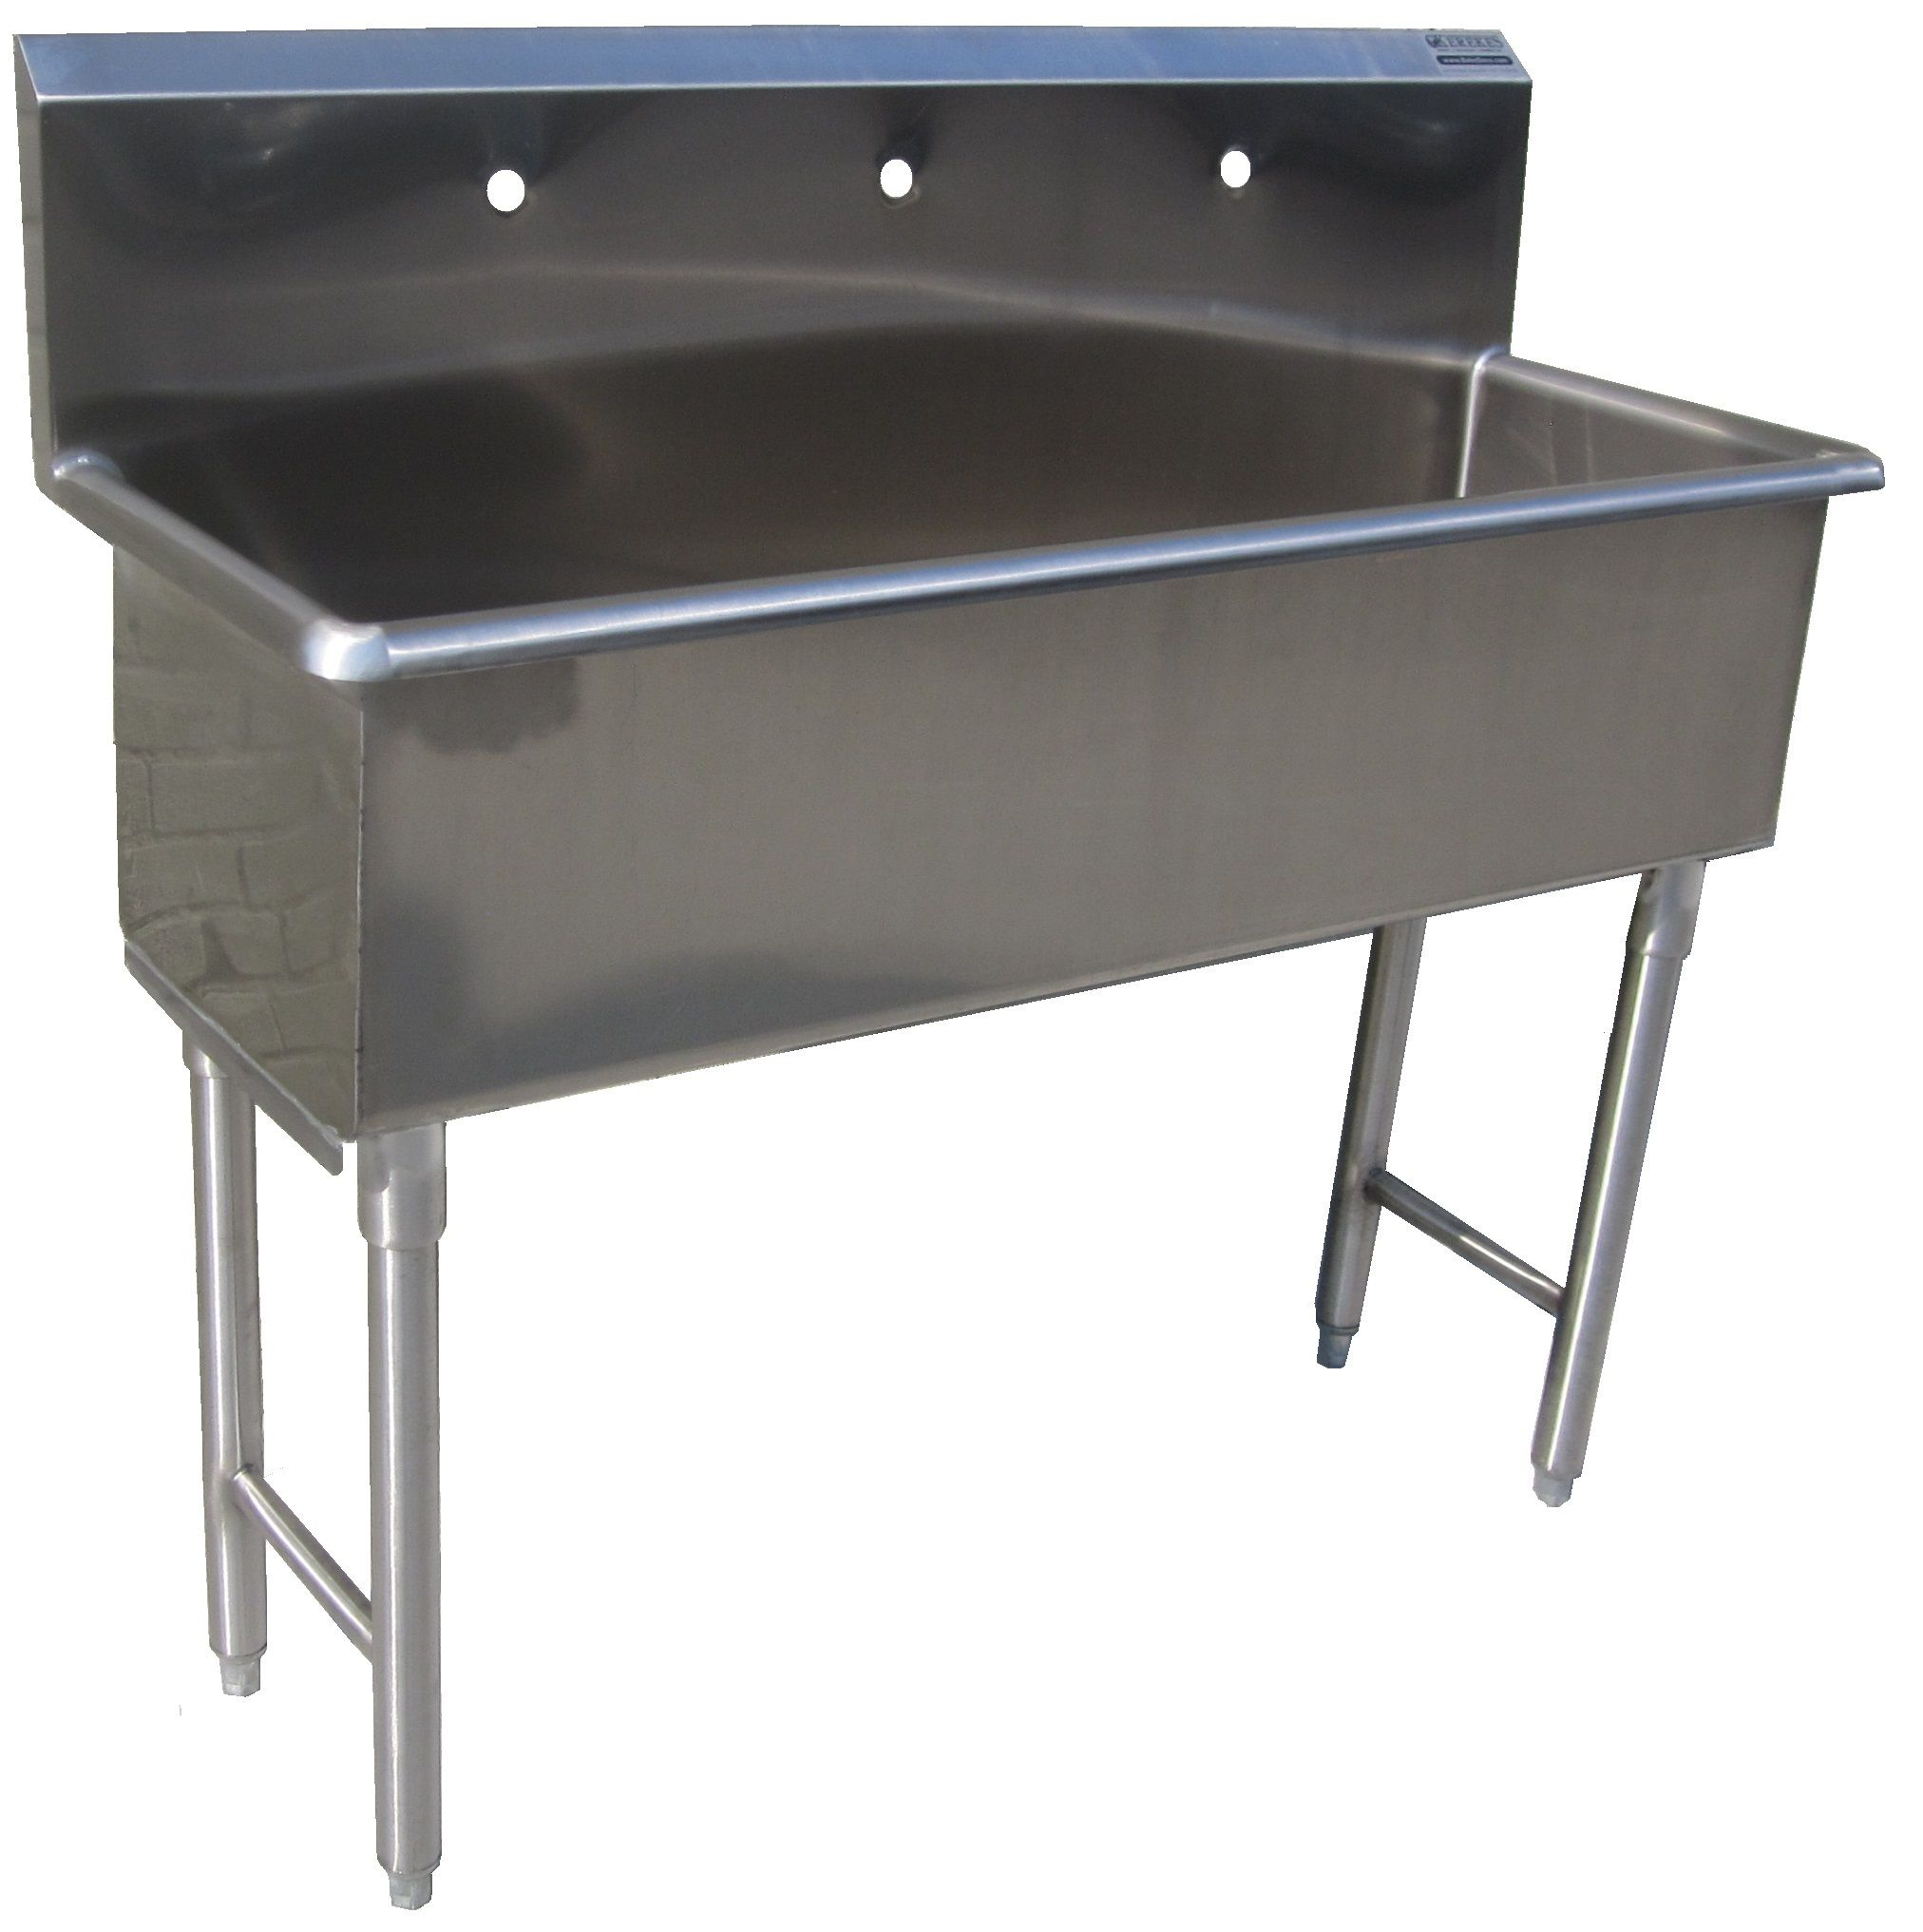 Custom Made Hand Sink Commercial Stainless Steel Kitchen Sink ...